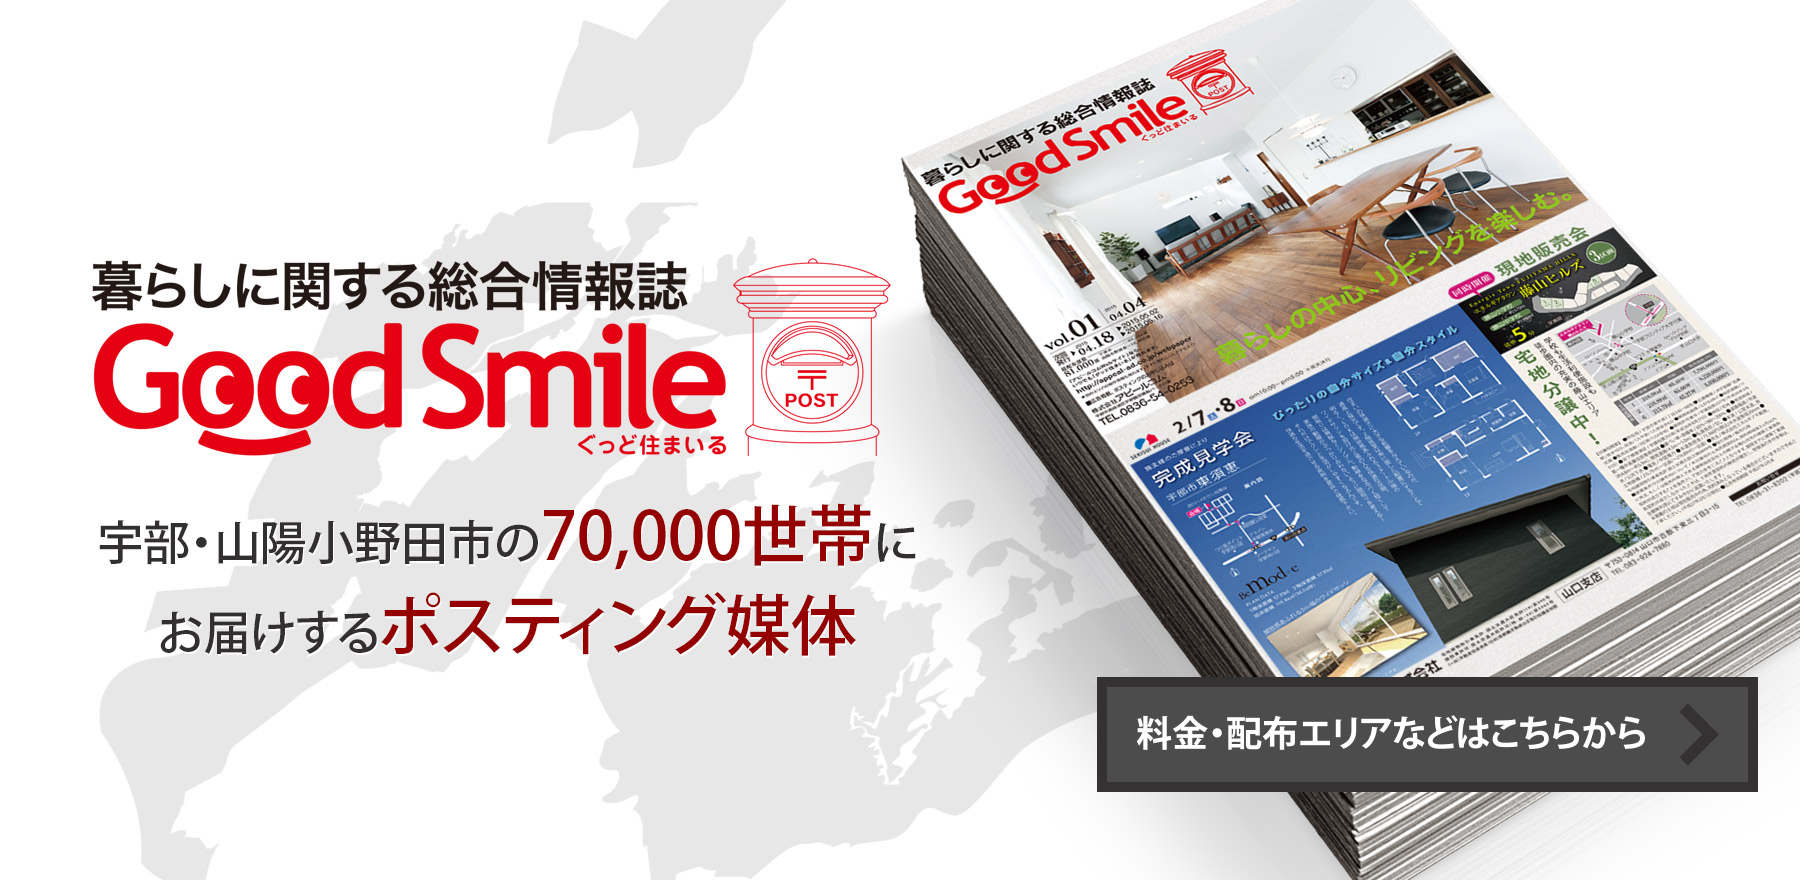 goodsmile_eye